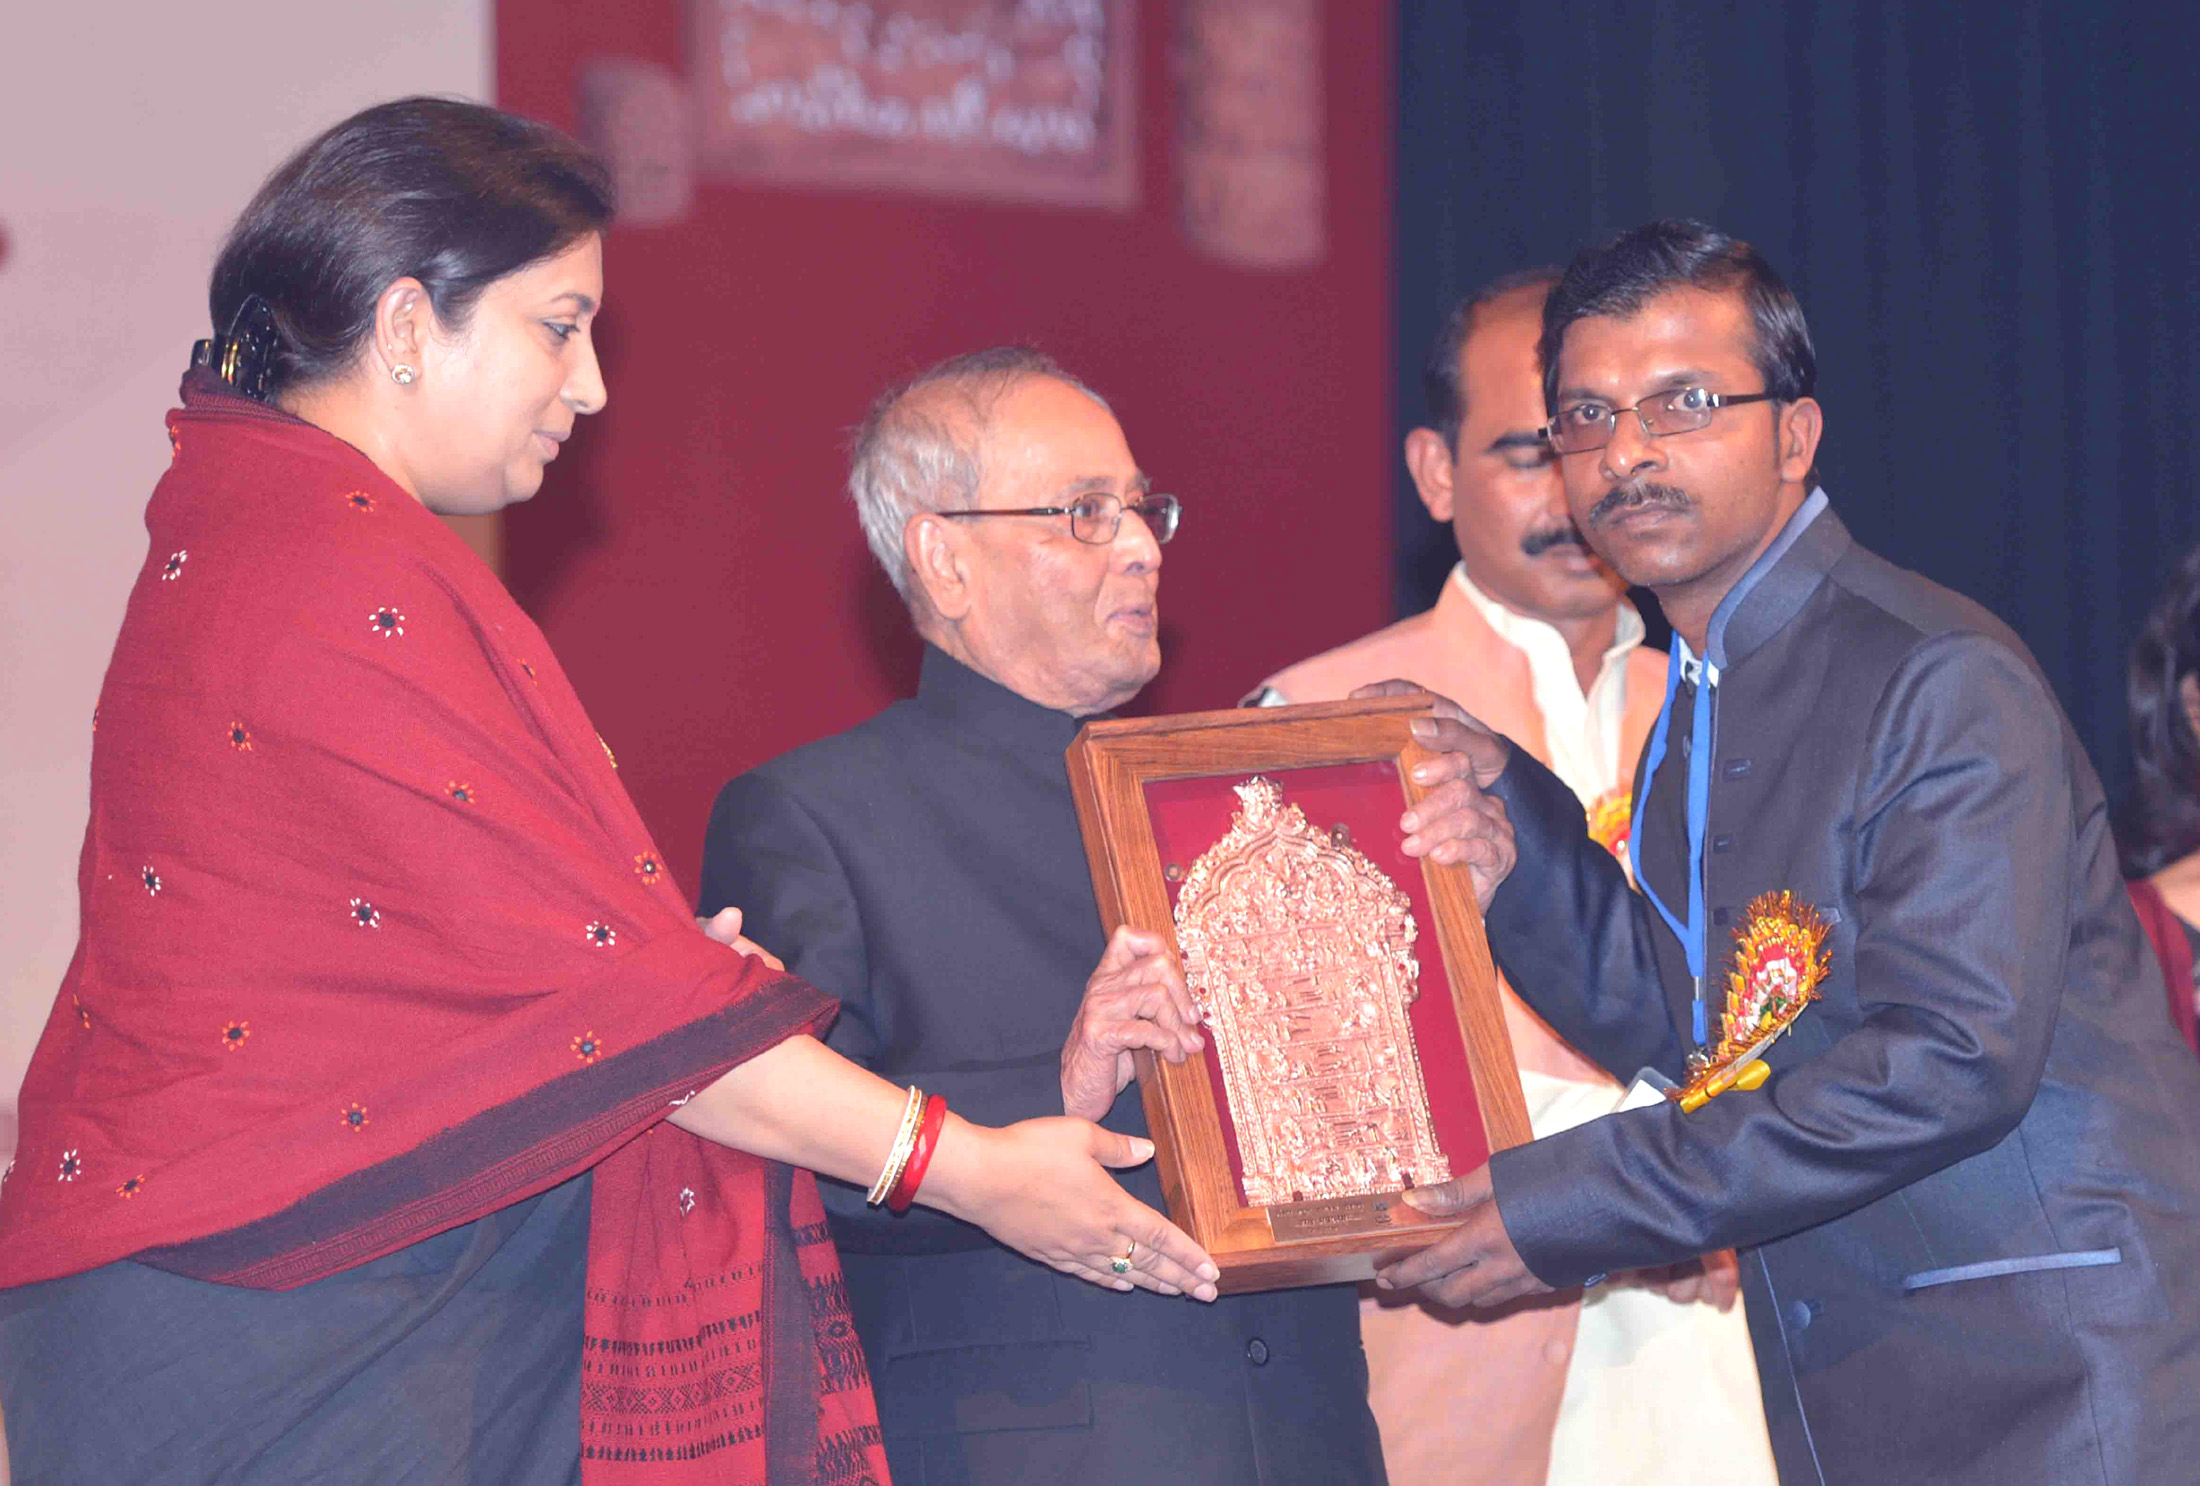 image of Hon'ble President of India, Shri Pranab Mukherjee conferred the National Awards & Shilp Guru Awards to master craftsperson for the year 2015 at Rashtrapati Bhavan, Cultural Center, New Delhi.